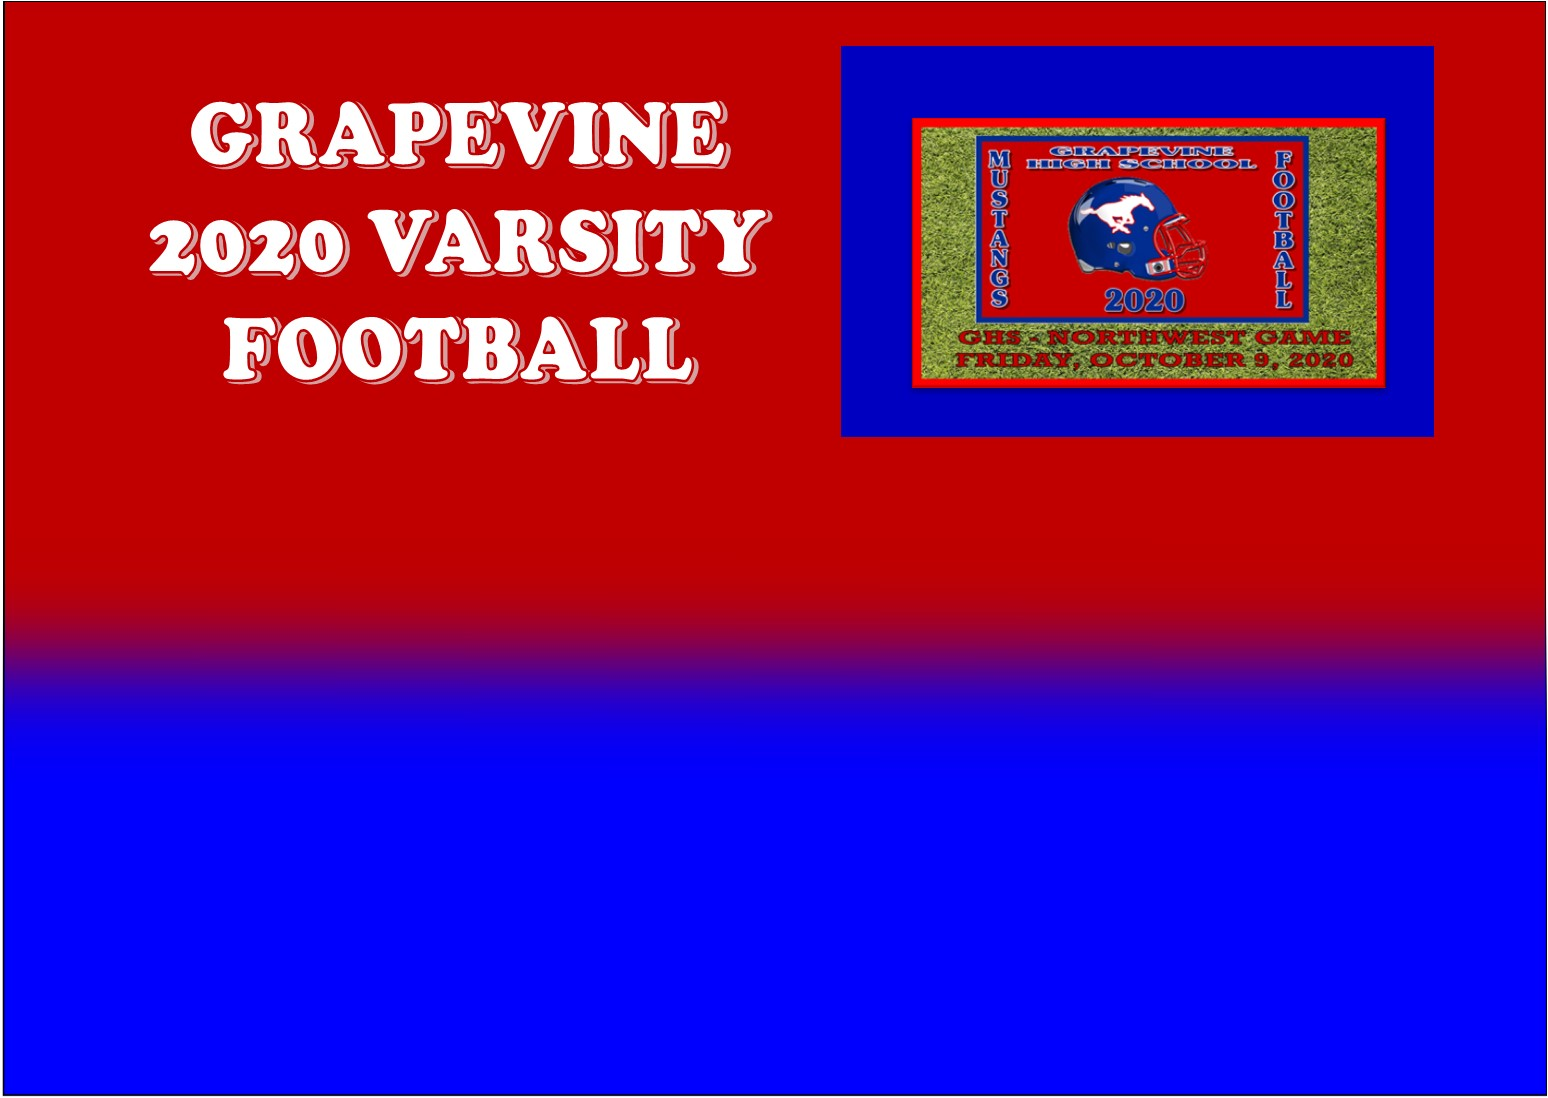 GCISD Football:  Grapevine Mustangs Best Northwest Texans At Home